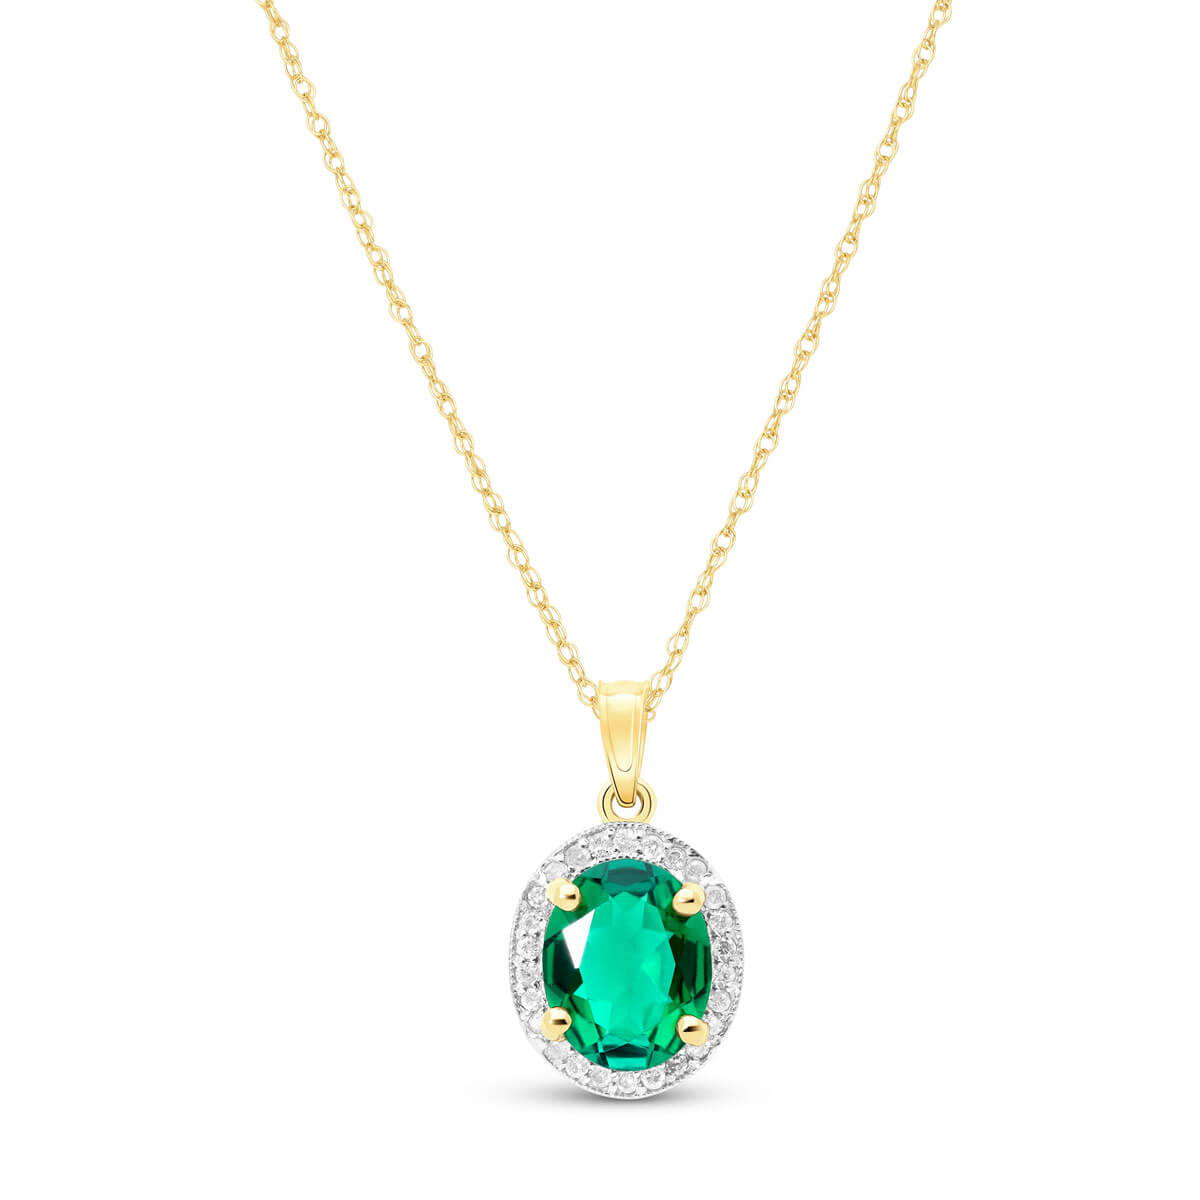 Lab Grown Emerald & Diamond Halo Pendant Necklace 2.04 ctw in 9ct Gold